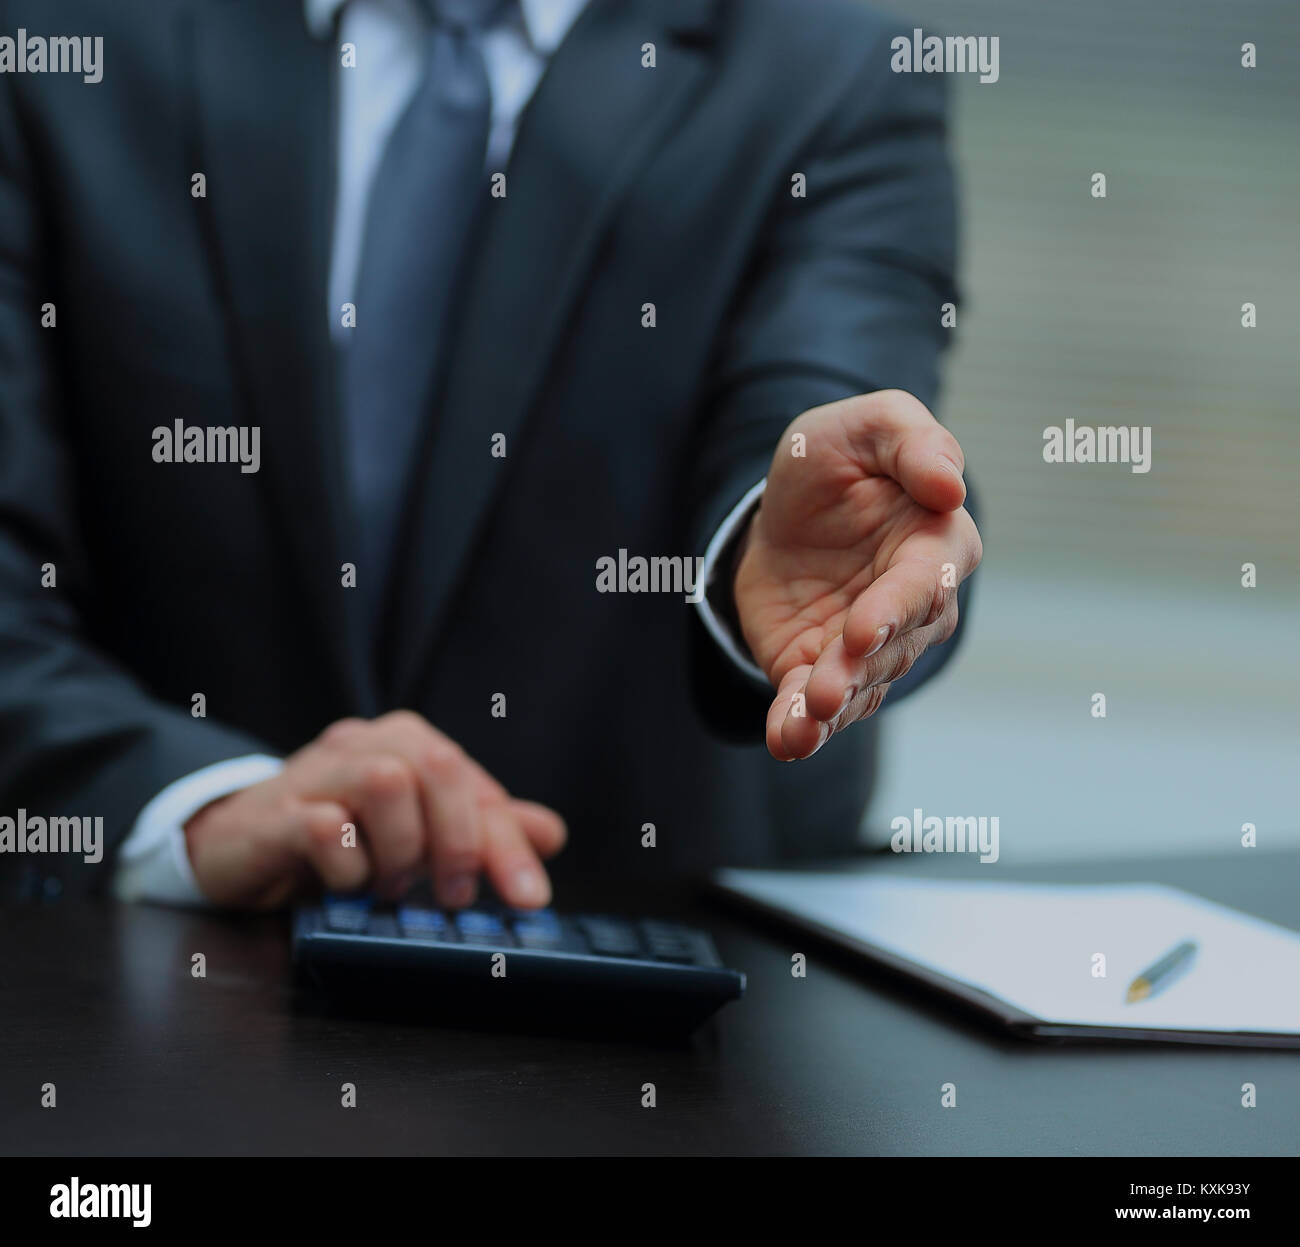 A business man with an open hand ready to seal a deal. - Stock Image